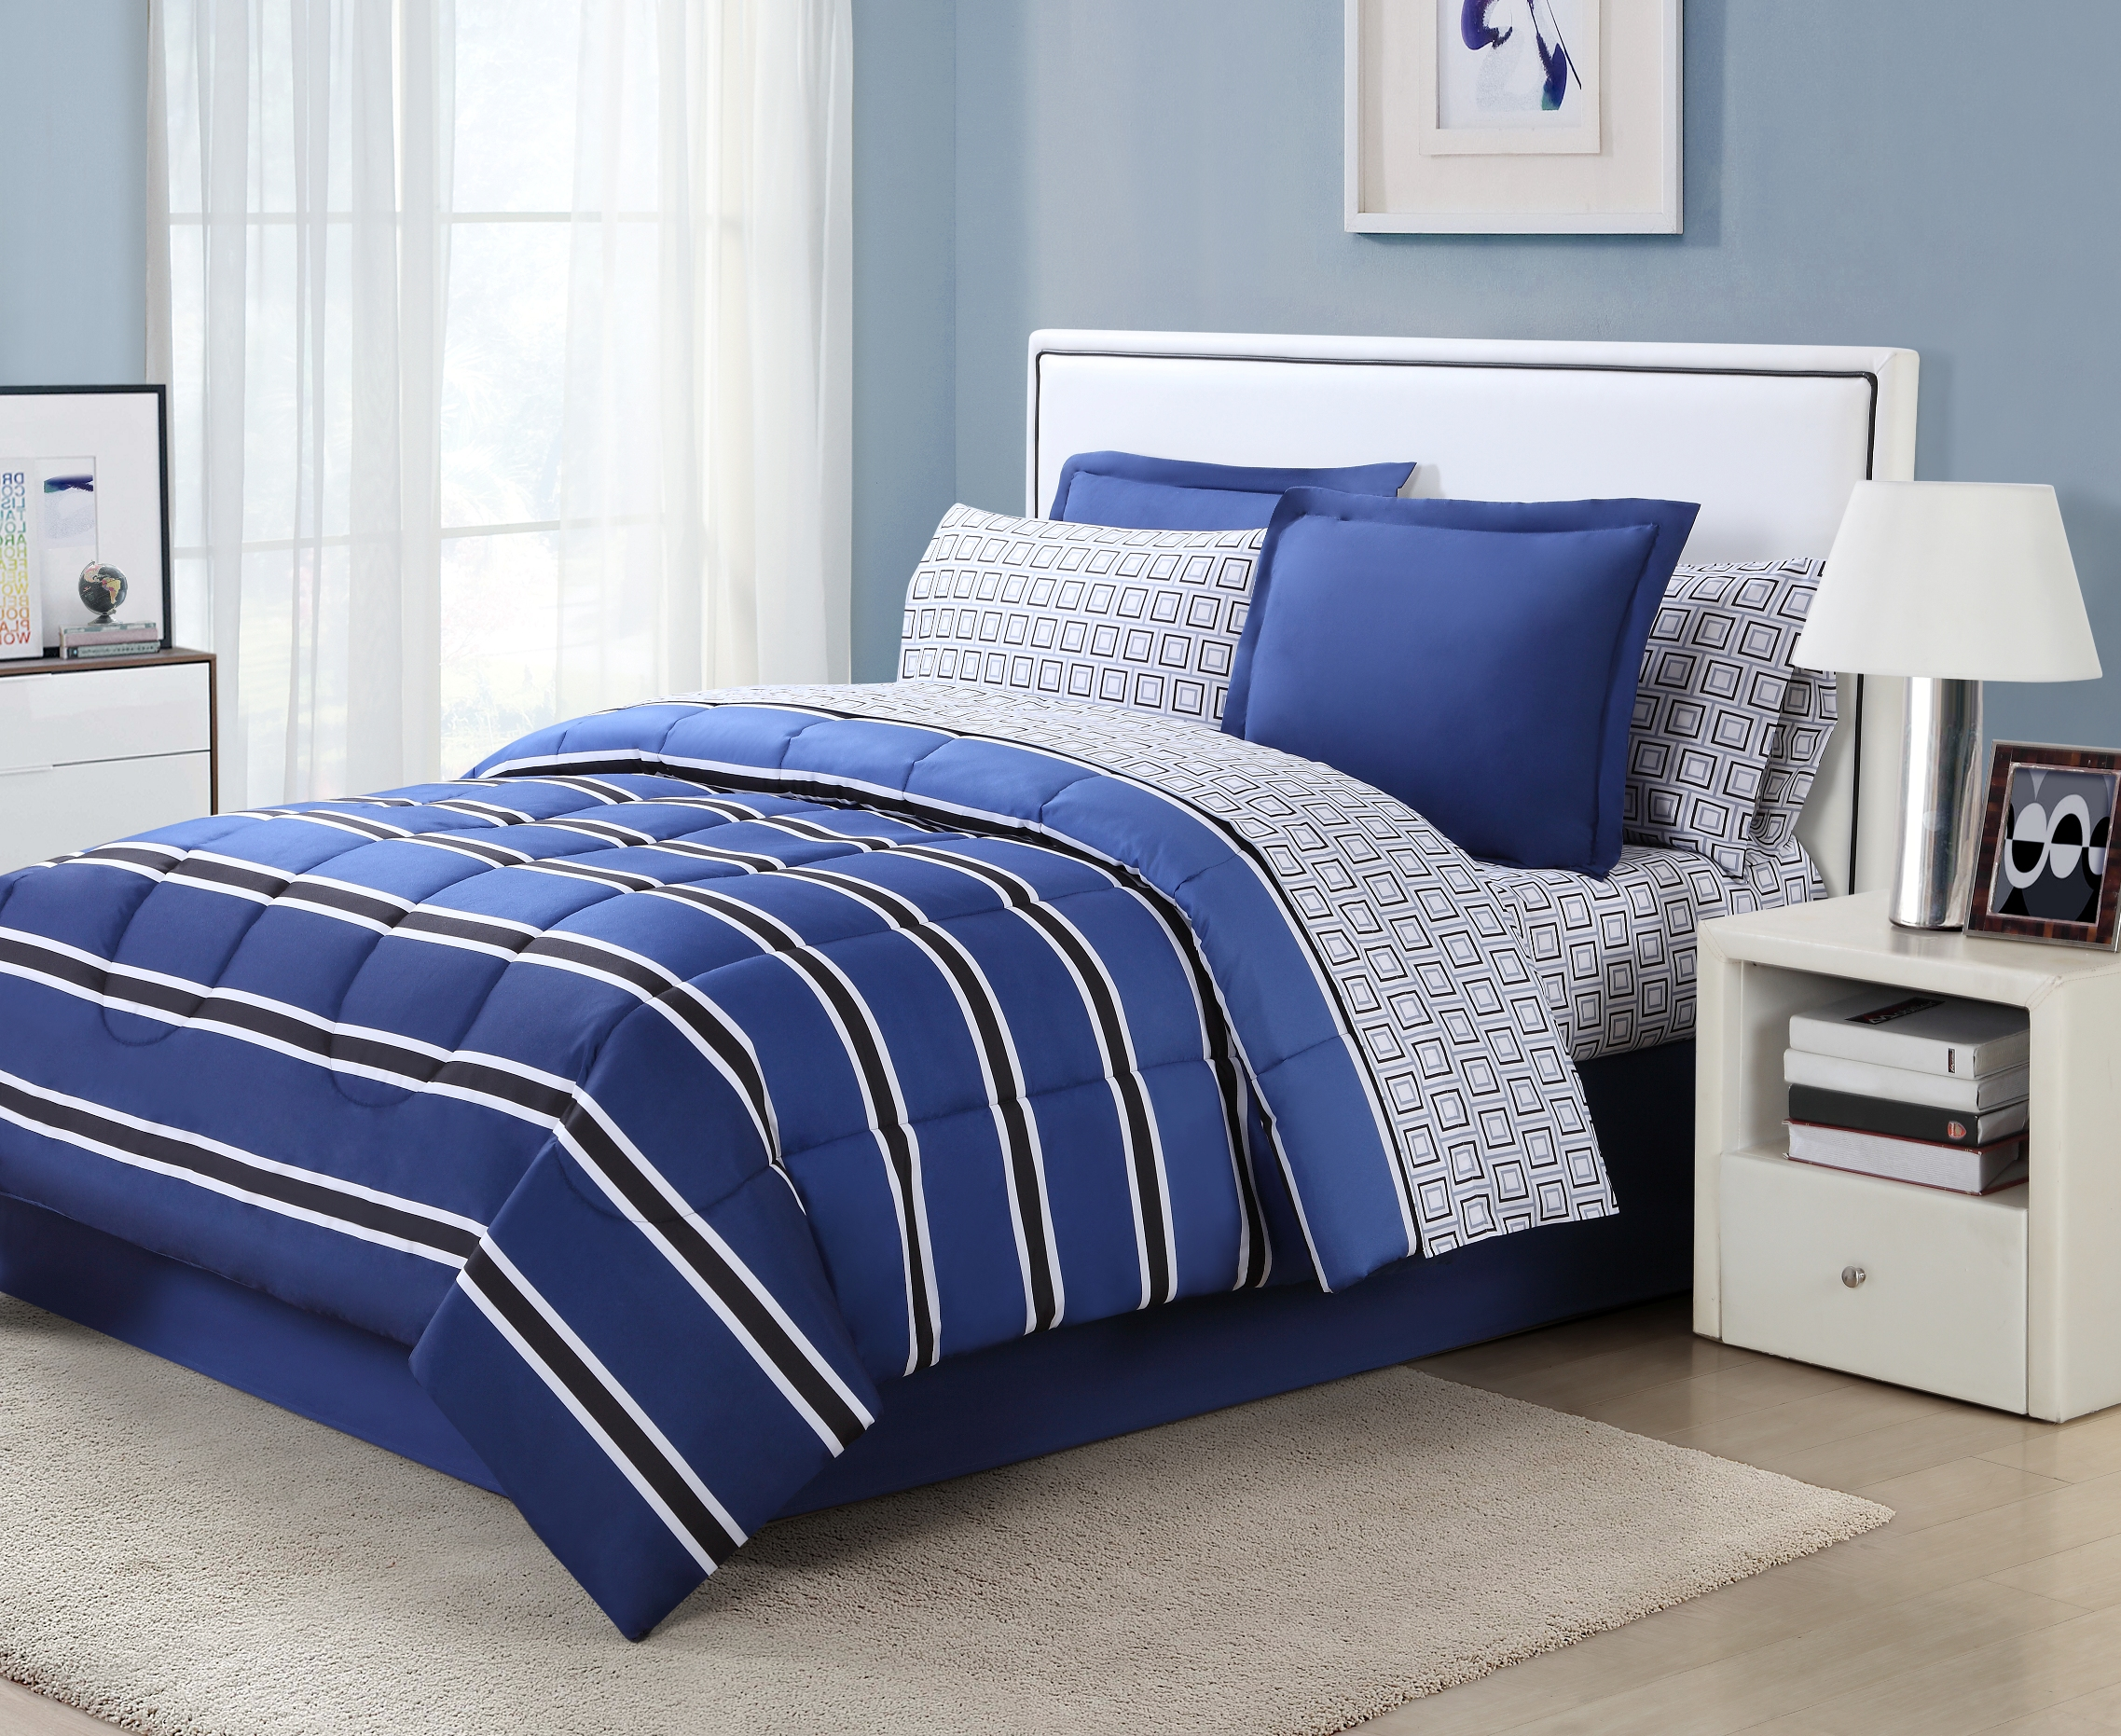 Essential Home 8-piece Complete Bed Set - Rugby Stripe & Bath Bedding